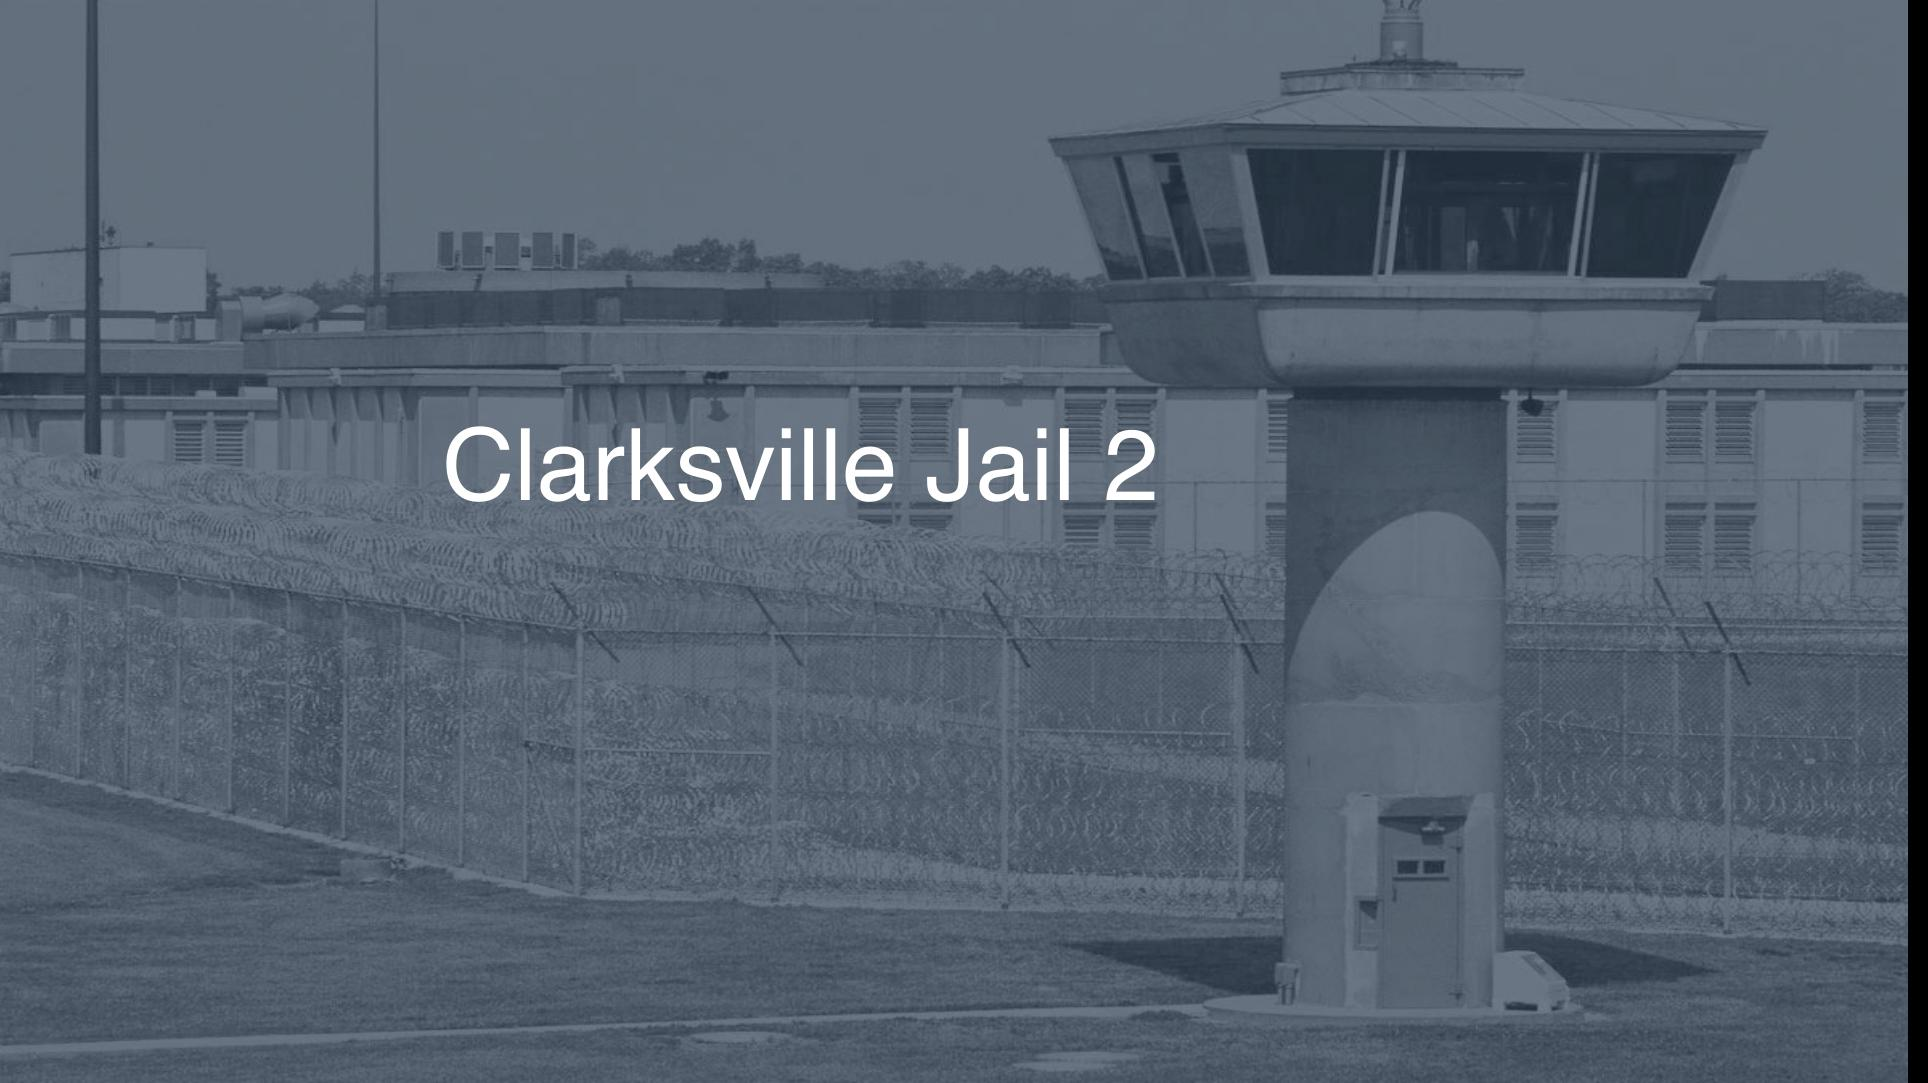 Clarksville Jail Inmate Search, Lookup & Services - Pigeonly